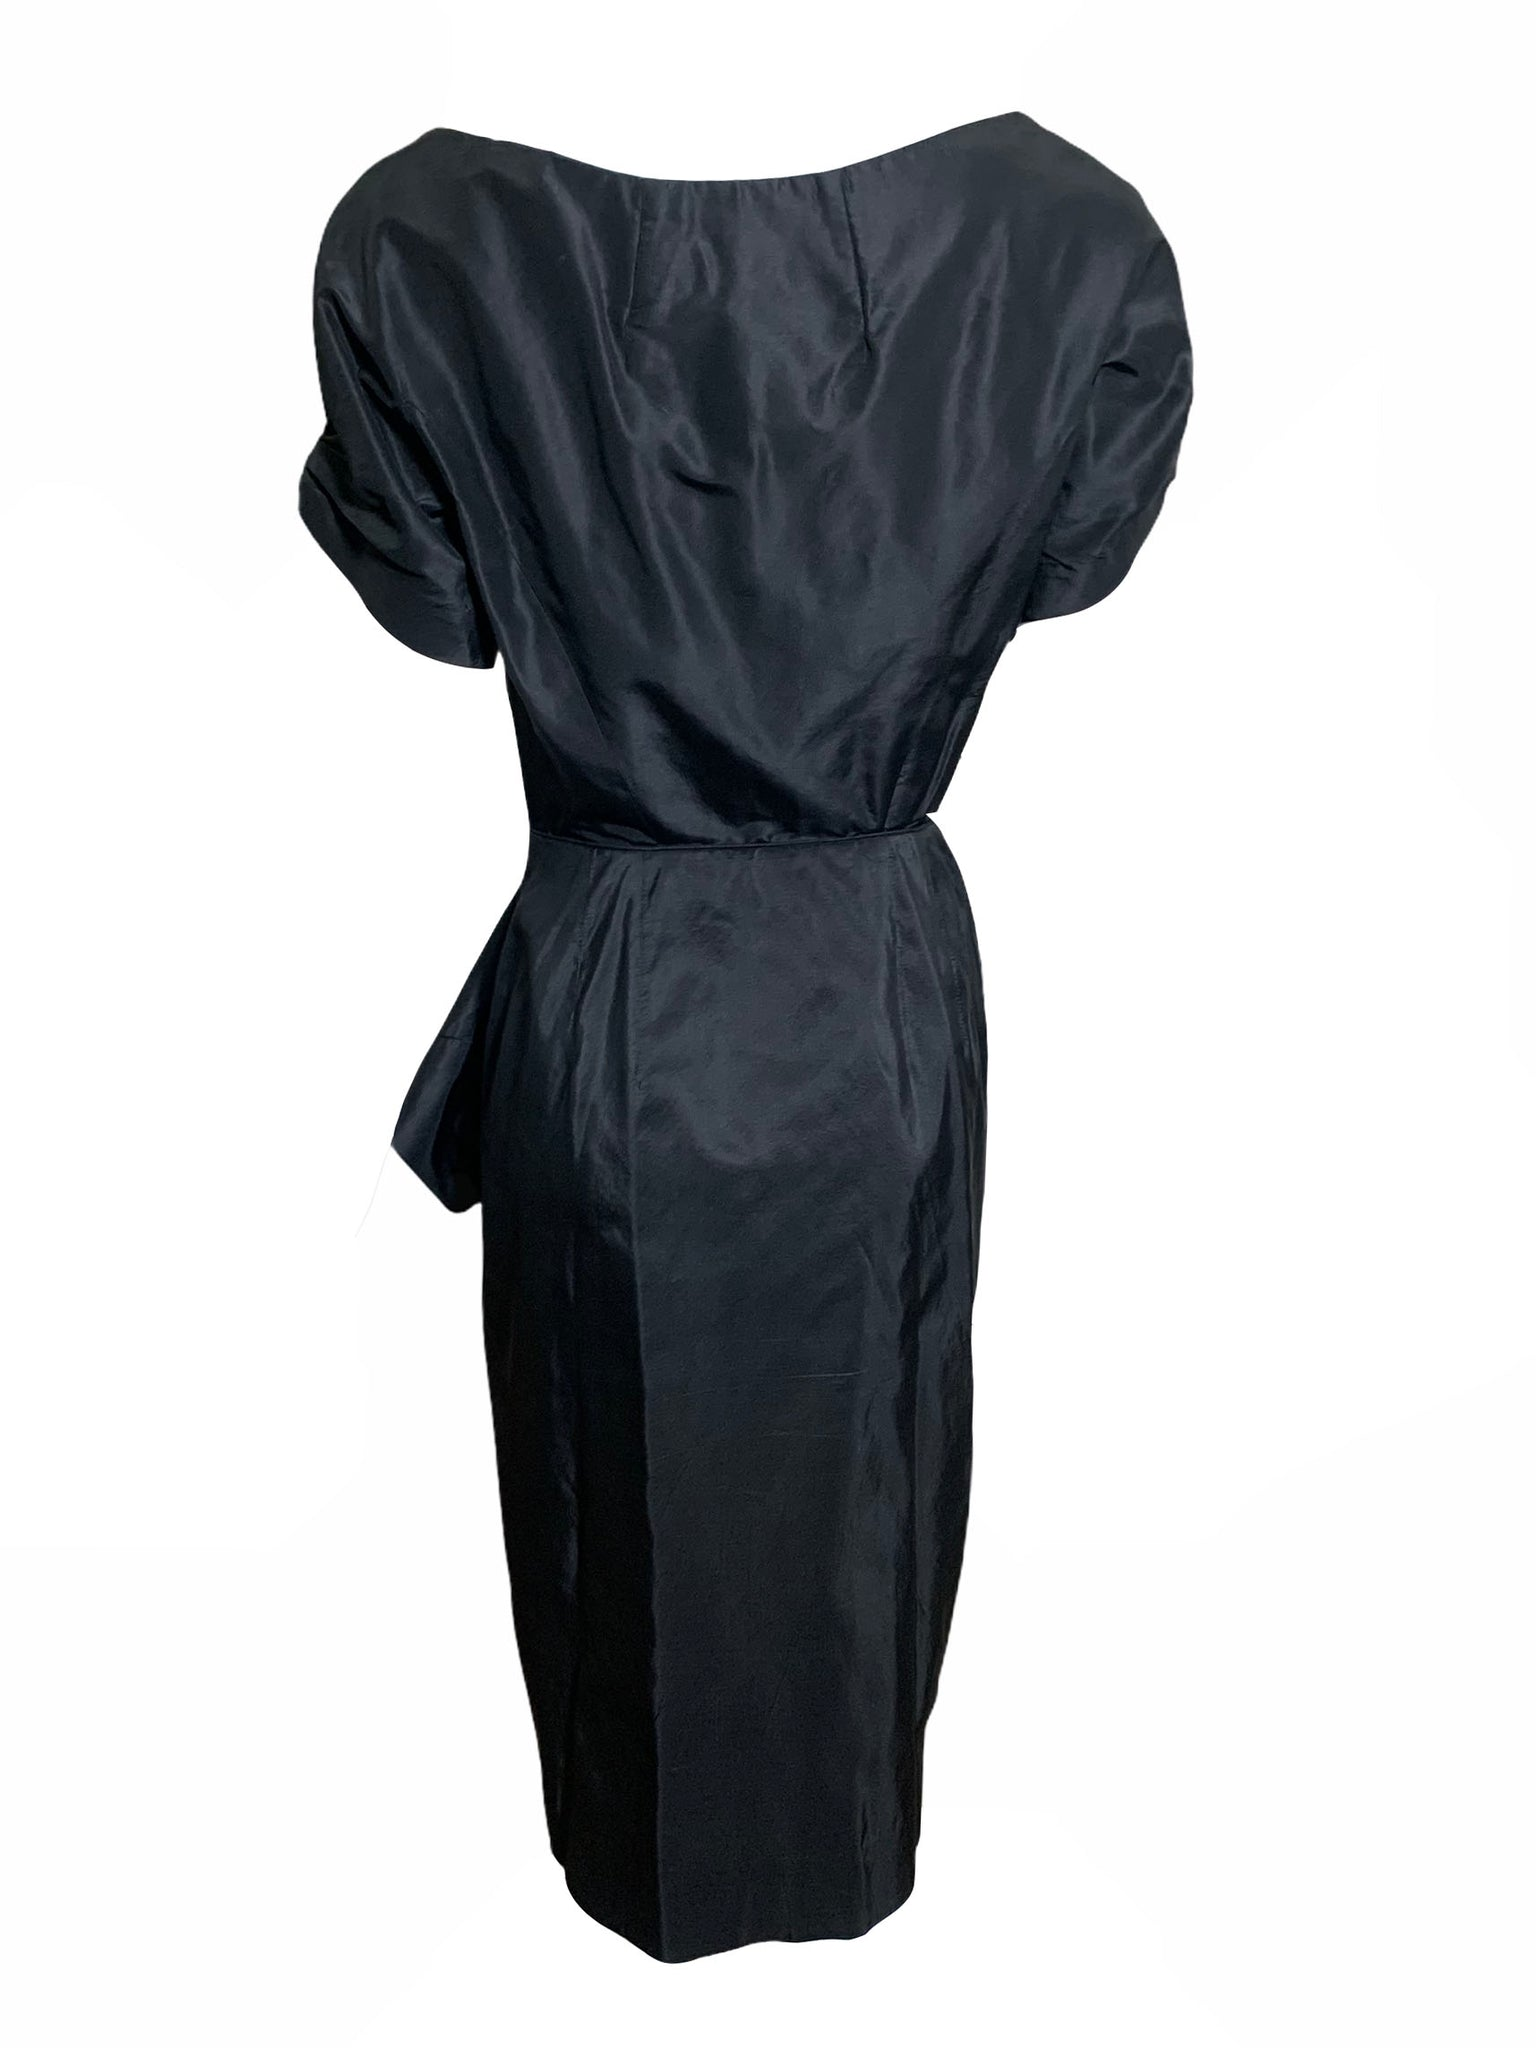 Ceil Chapman Gorgeous Black Taffeta Cocktail Dress BACK 3 of 5